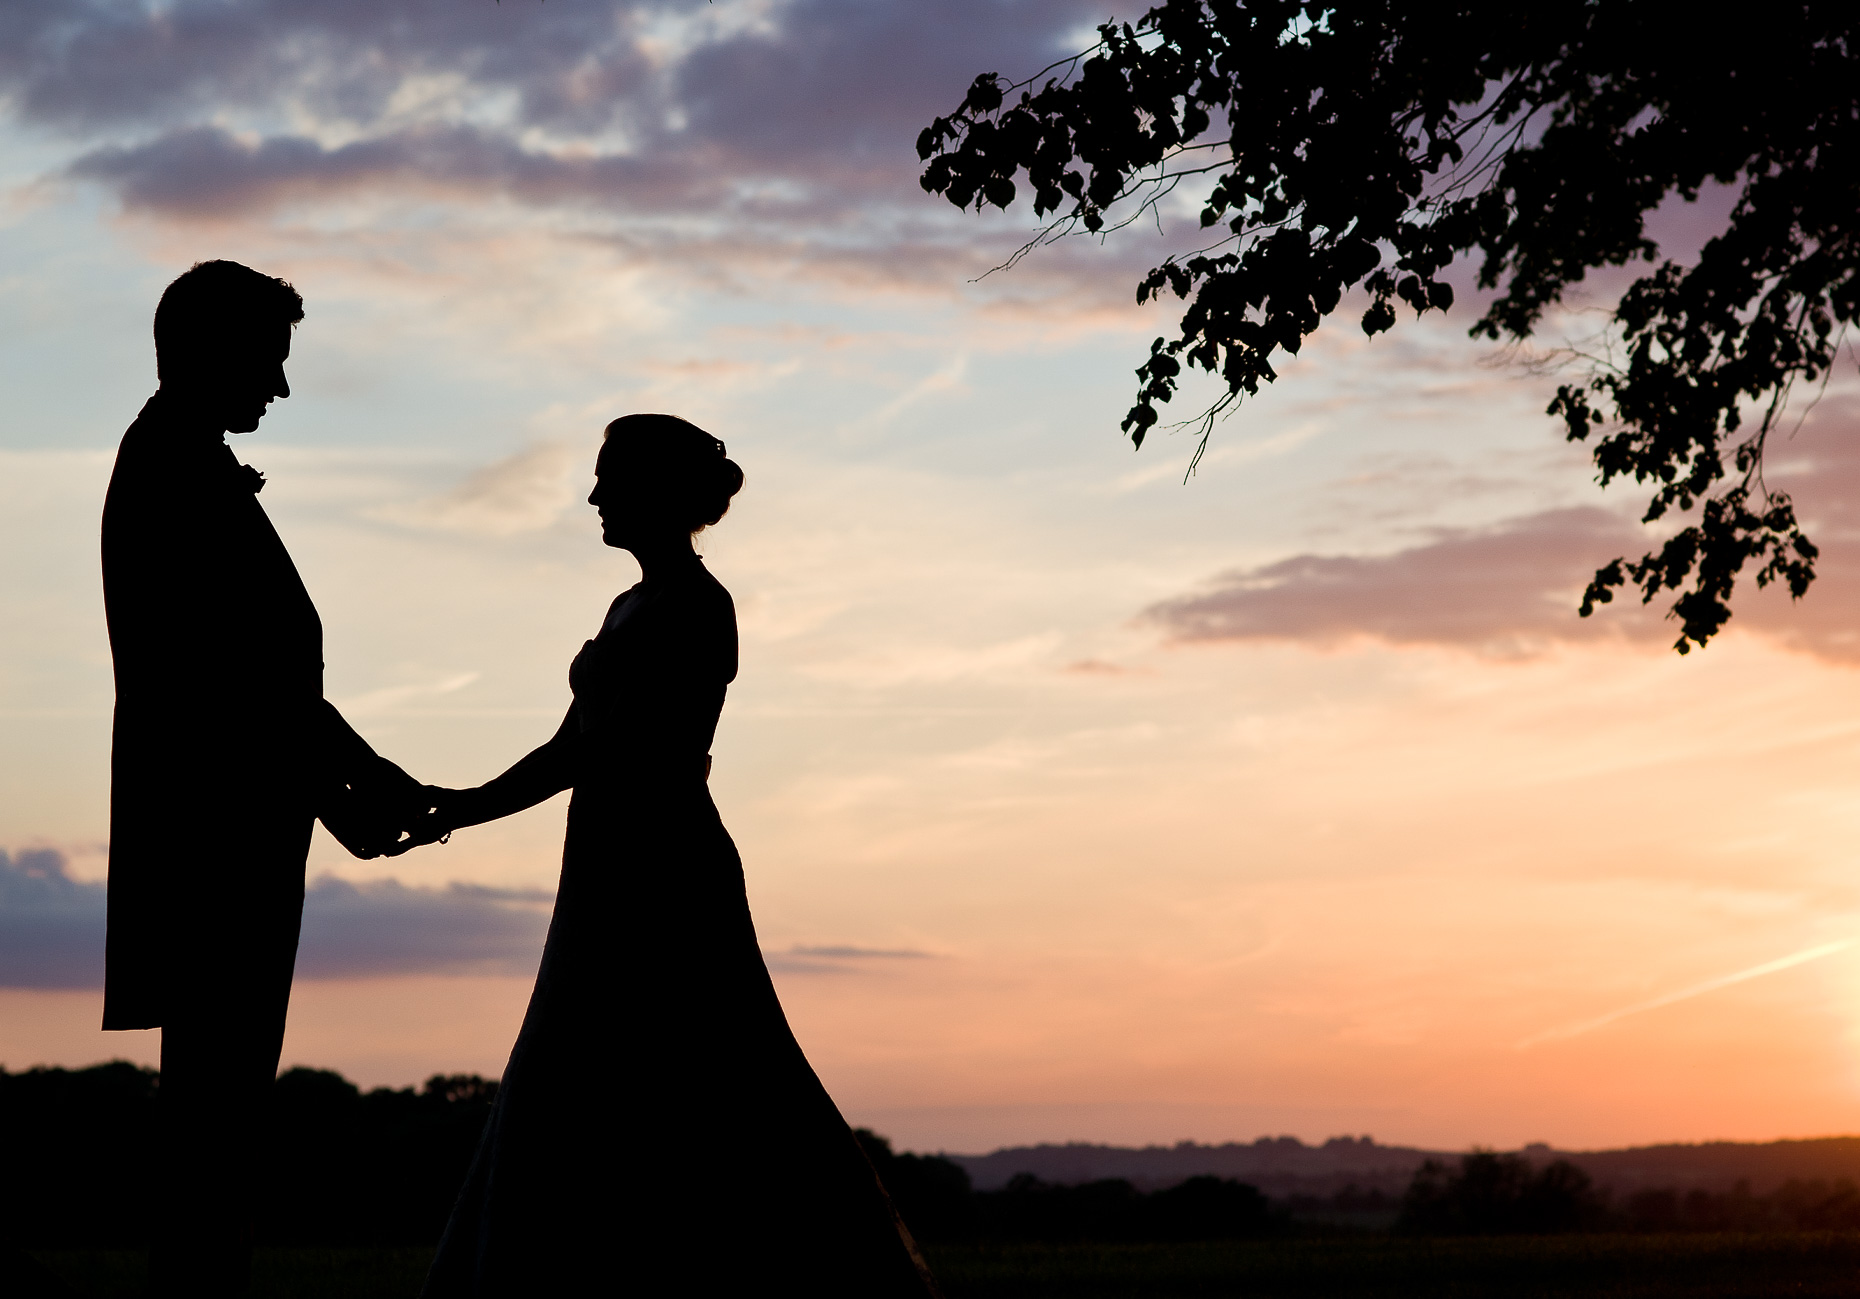 emma-summer-sunset-silhouette-together-wedding-night-hampshire-photographer-15